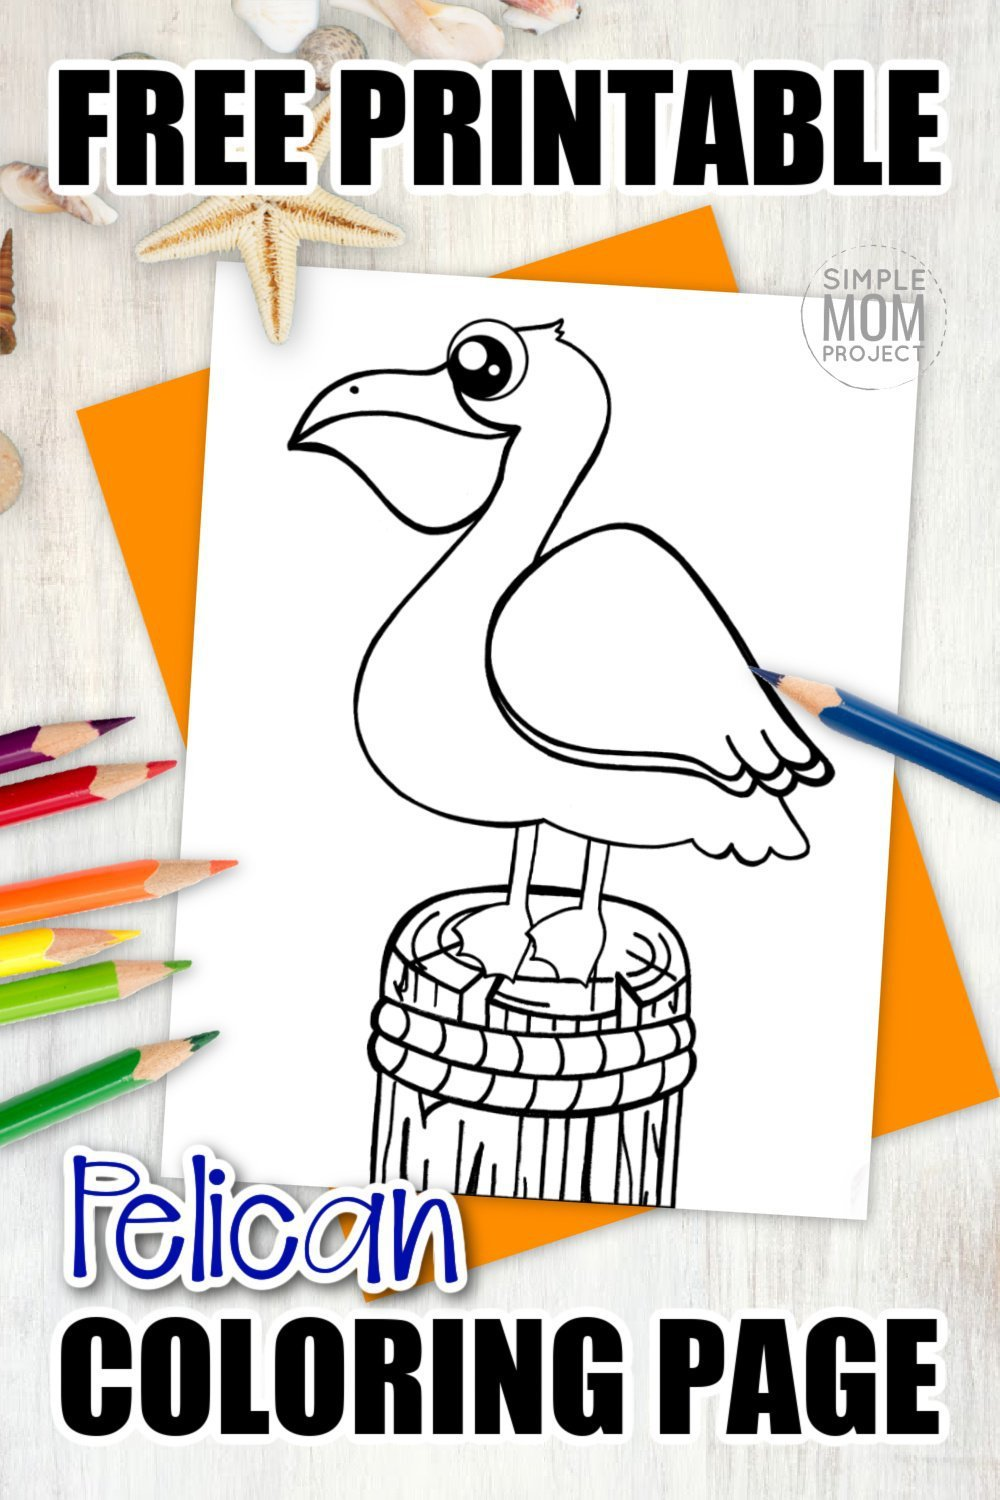 Free Printable Pelican Ocean Animal Coloring Page for kids